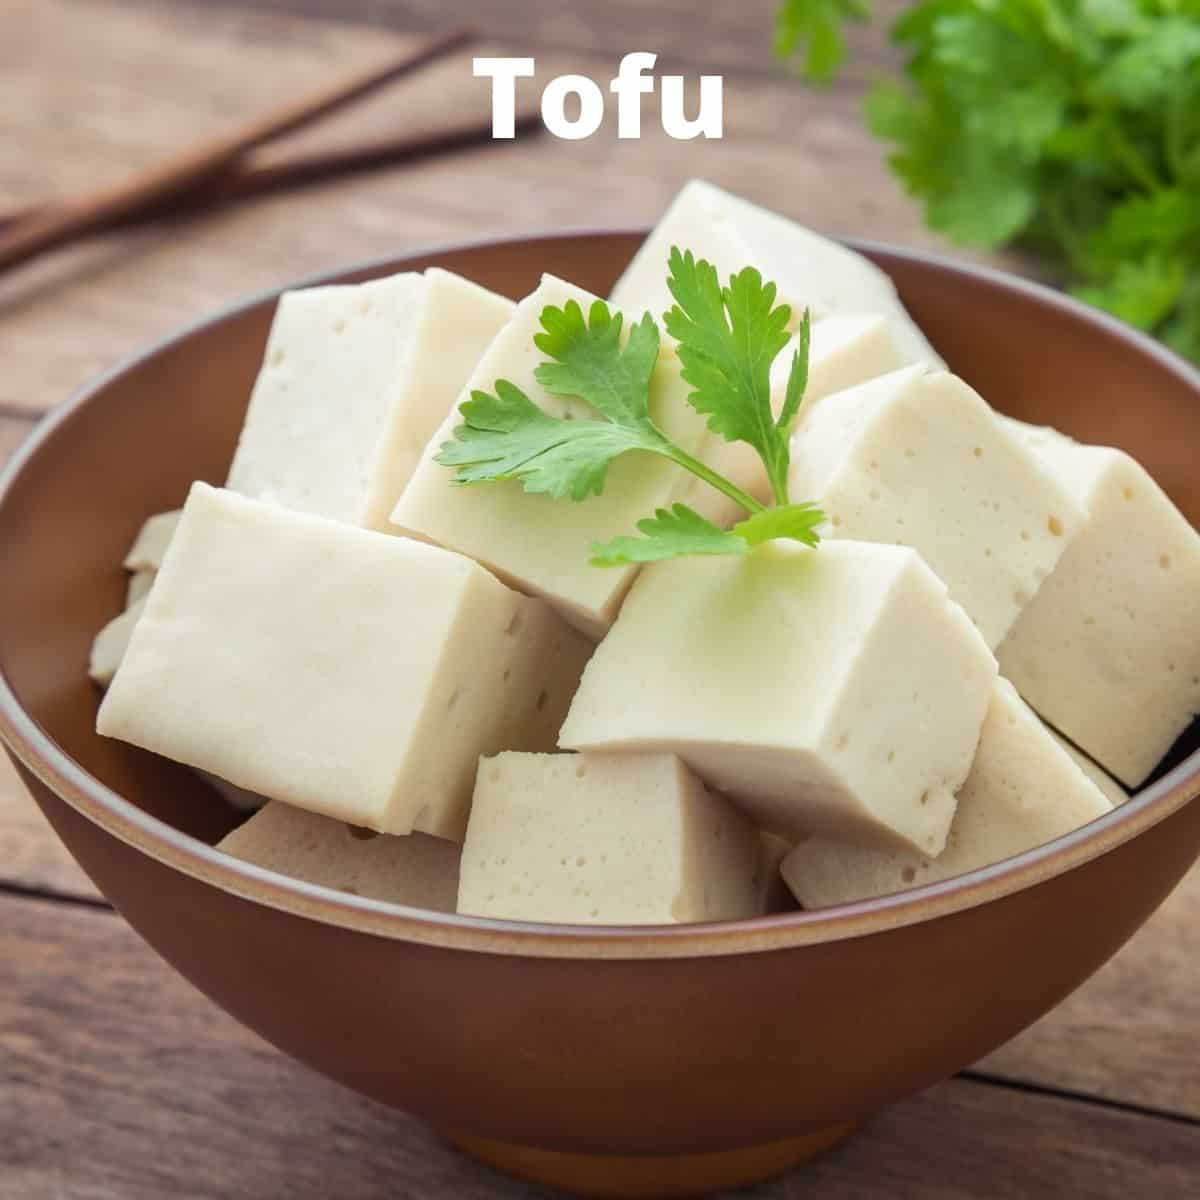 diced tofu in wooden bowl